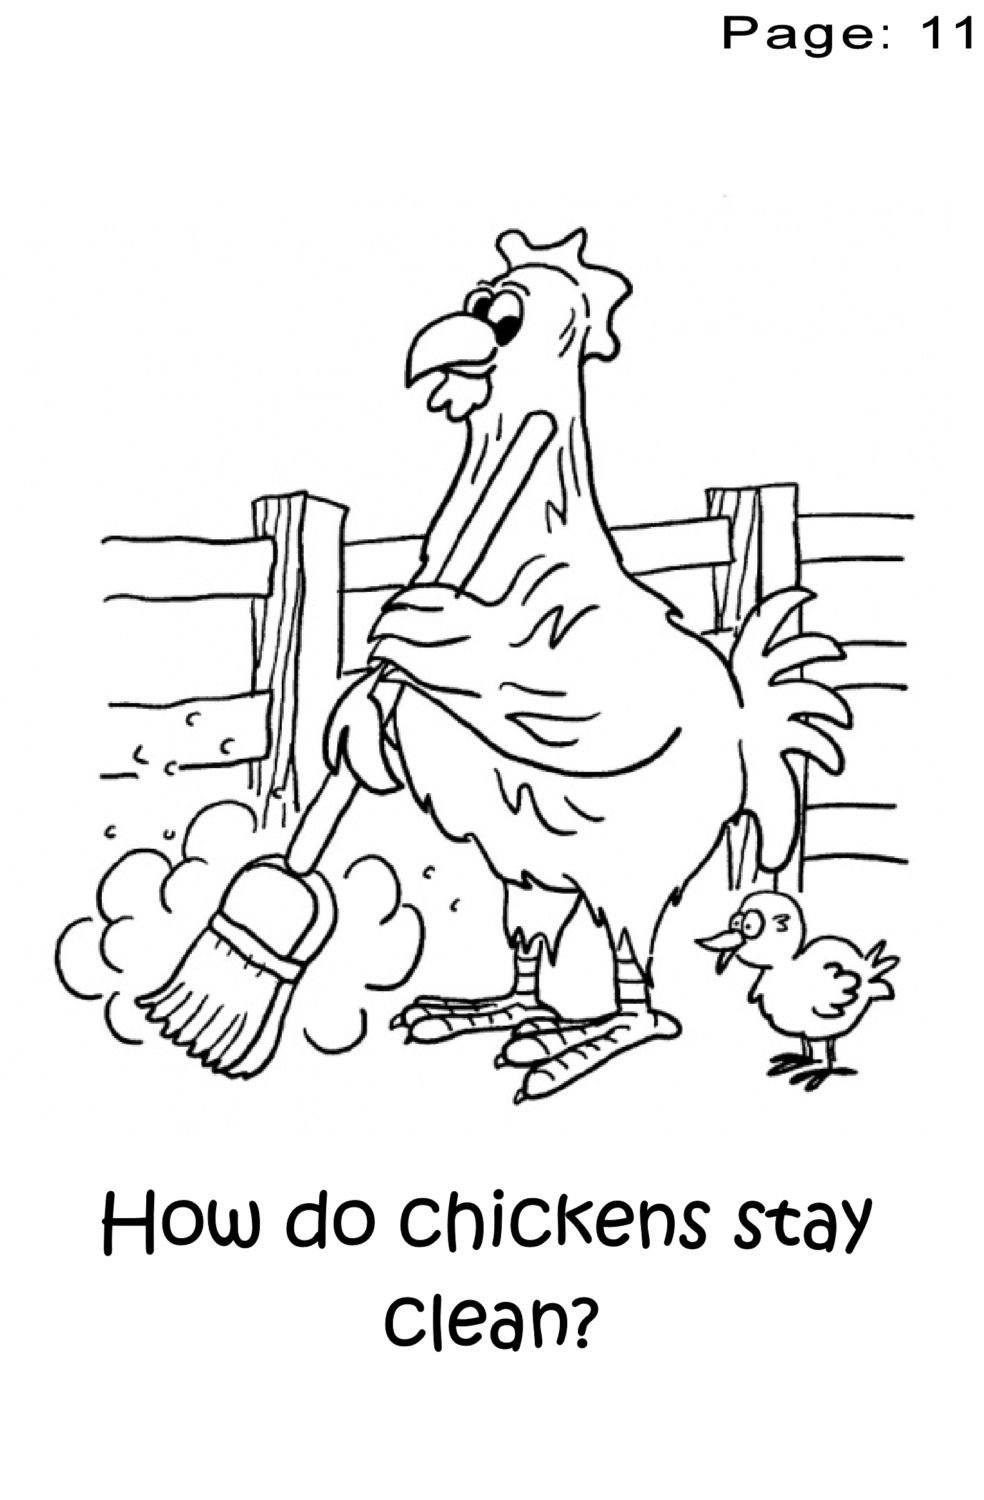 chicken coloring pages for preschoolers - photo#17